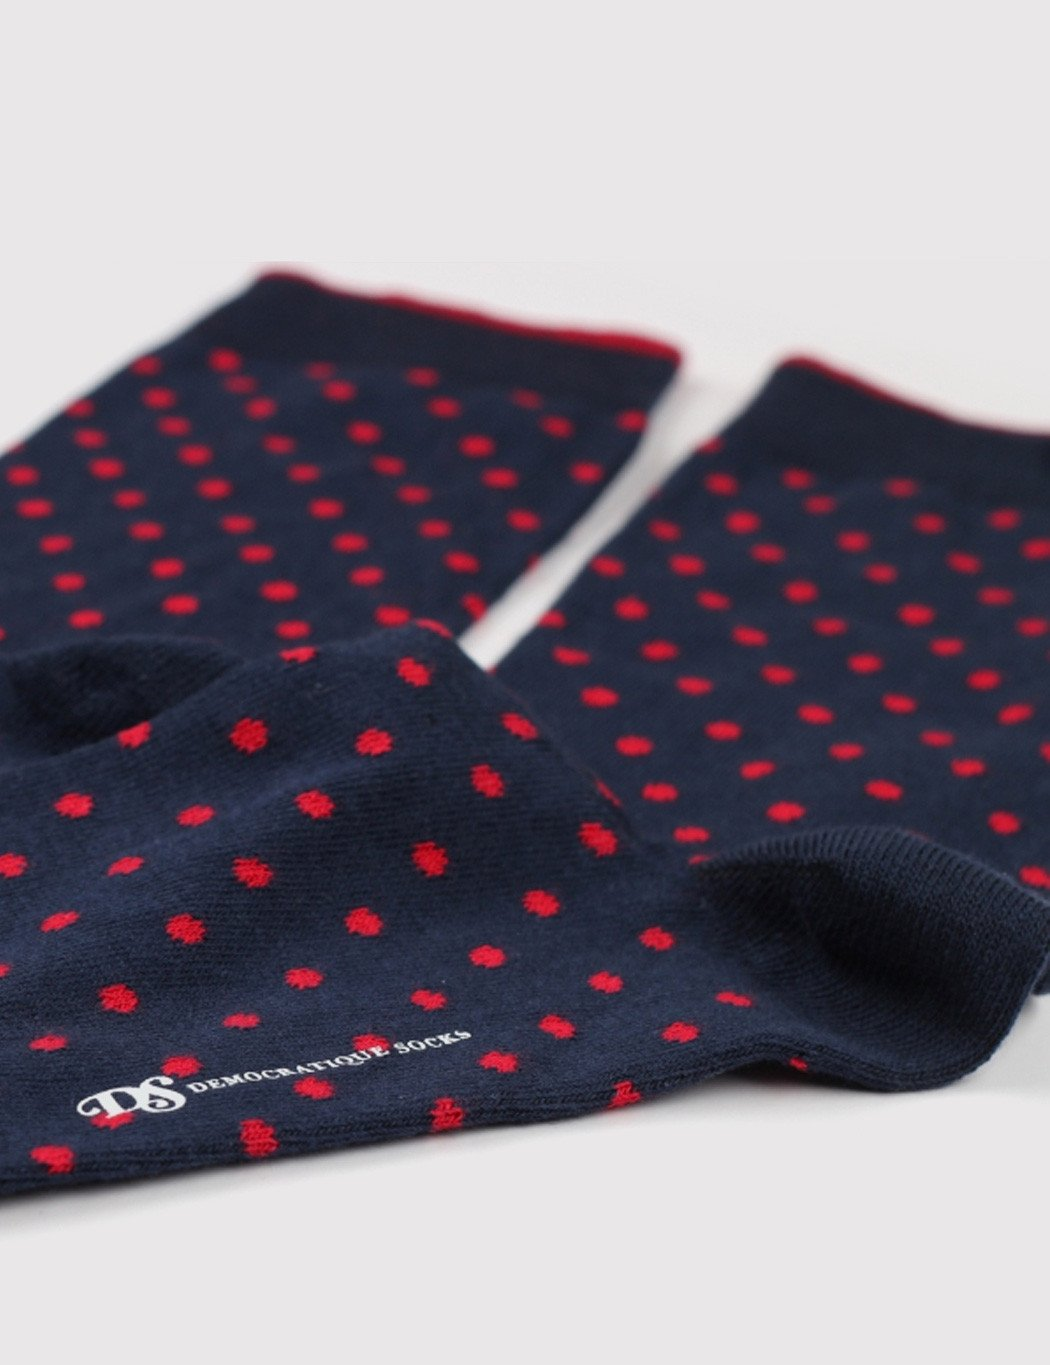 Democratique Original Polkadot Socks - Navy/Spring Red